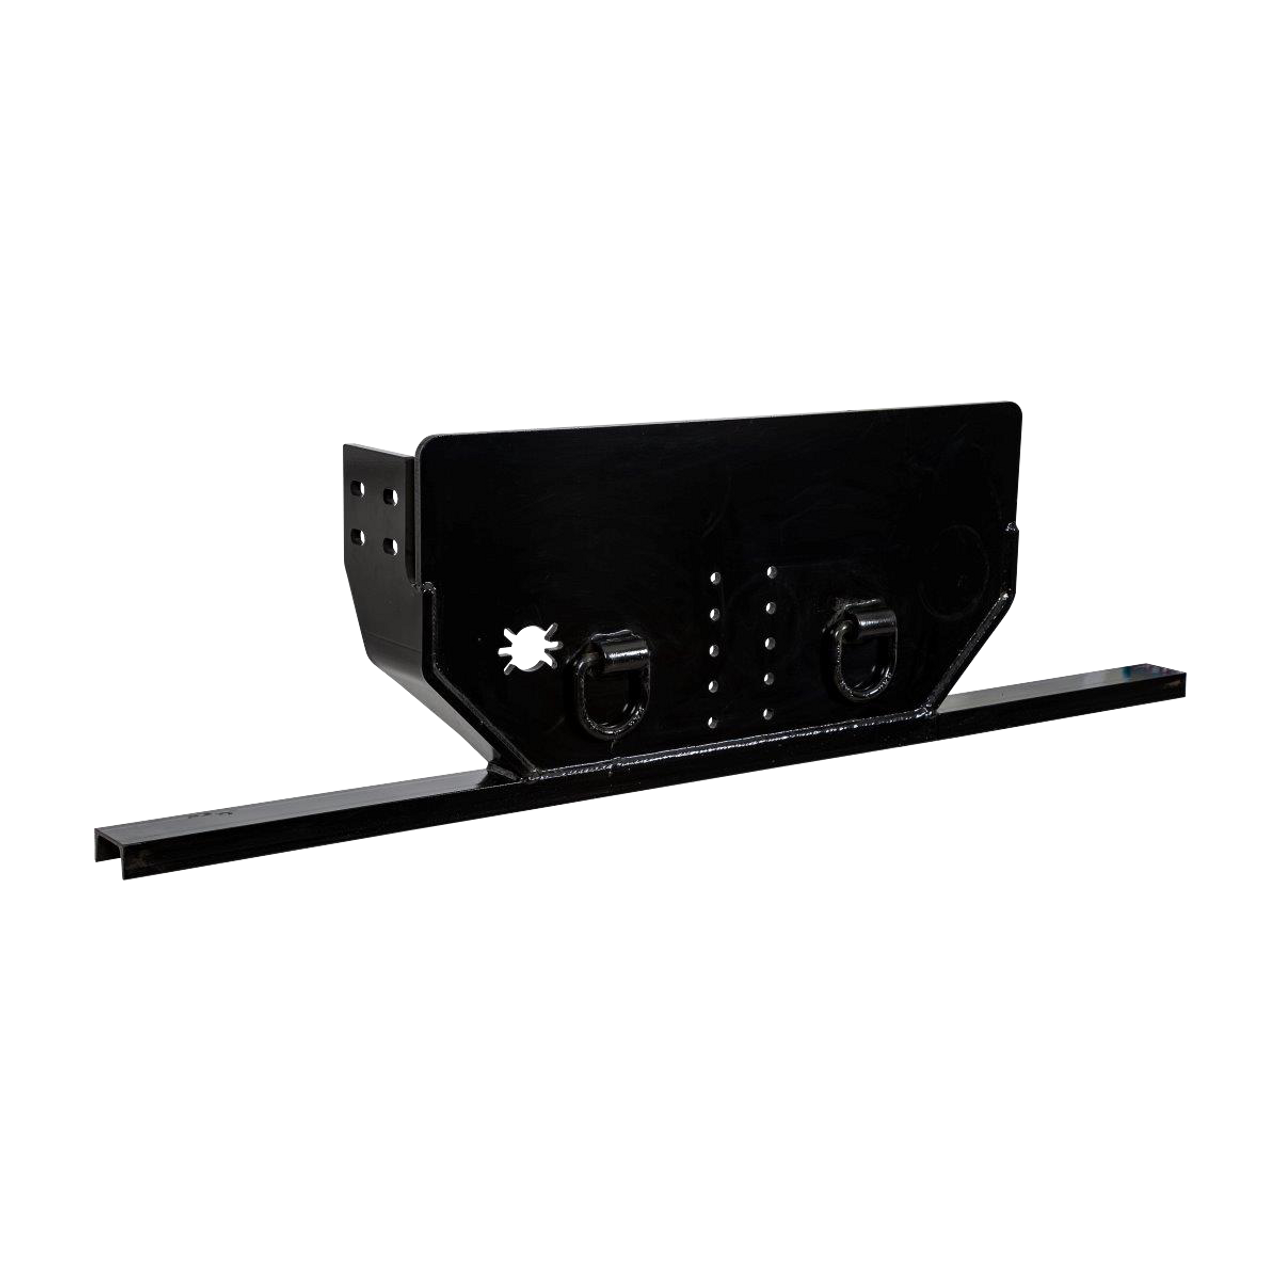 1809080 --- Hitch Plate with Pintle Hook Mounting Holes for Chevy/GMC 4500-6500